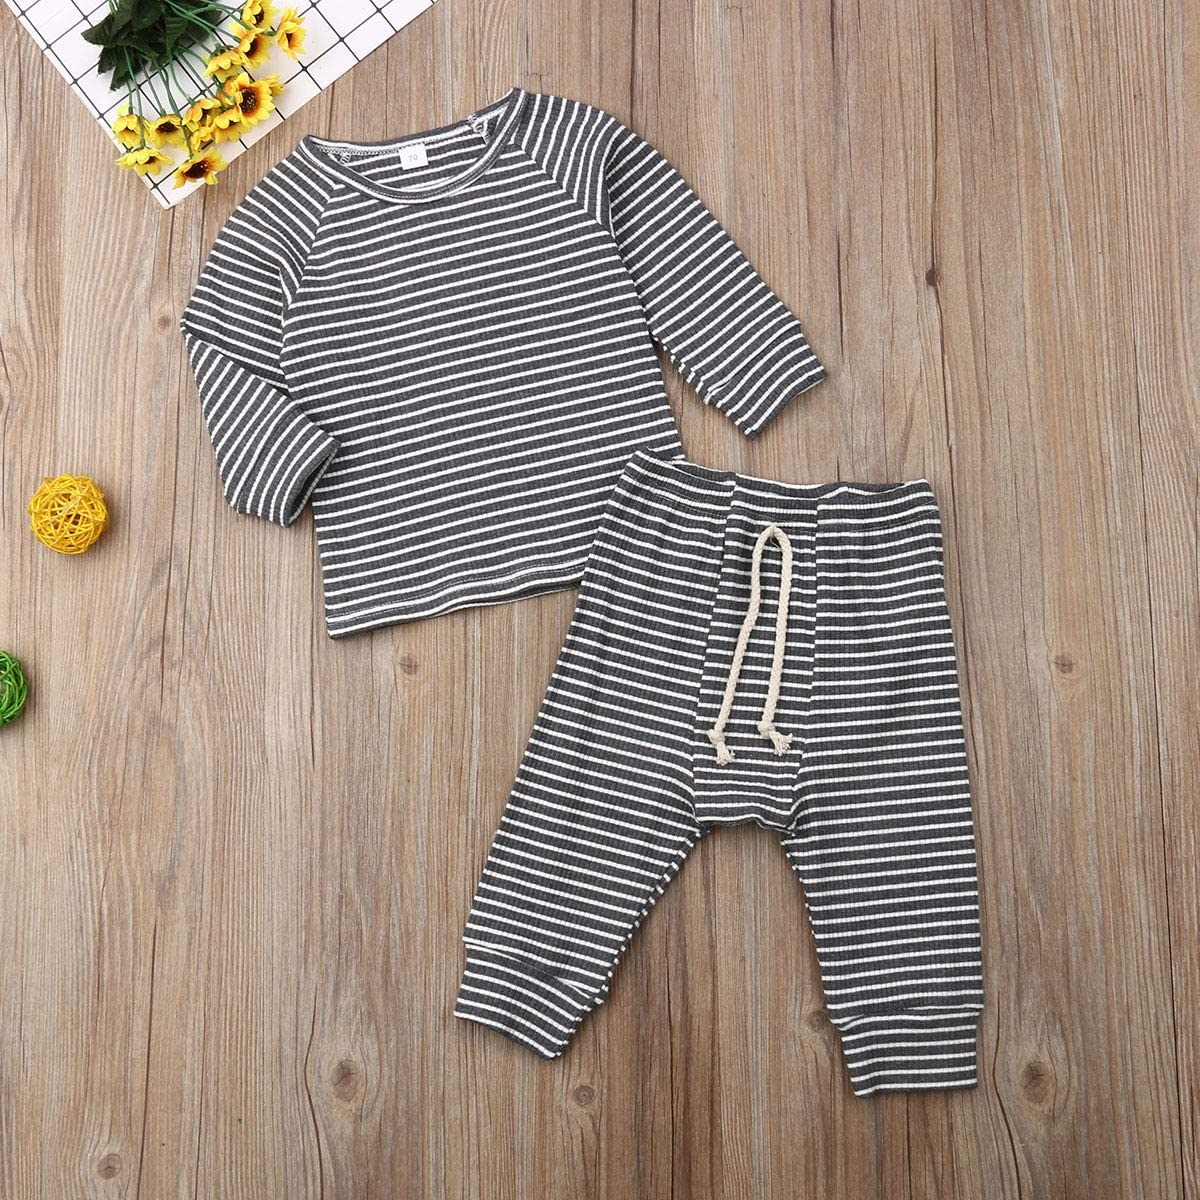 ITFABS Cute Baby Boys Girls Pajamas Set Cotton Solid Pjs Sleepwear Toddler Baby Long Sleeve Sleeper Home Wear